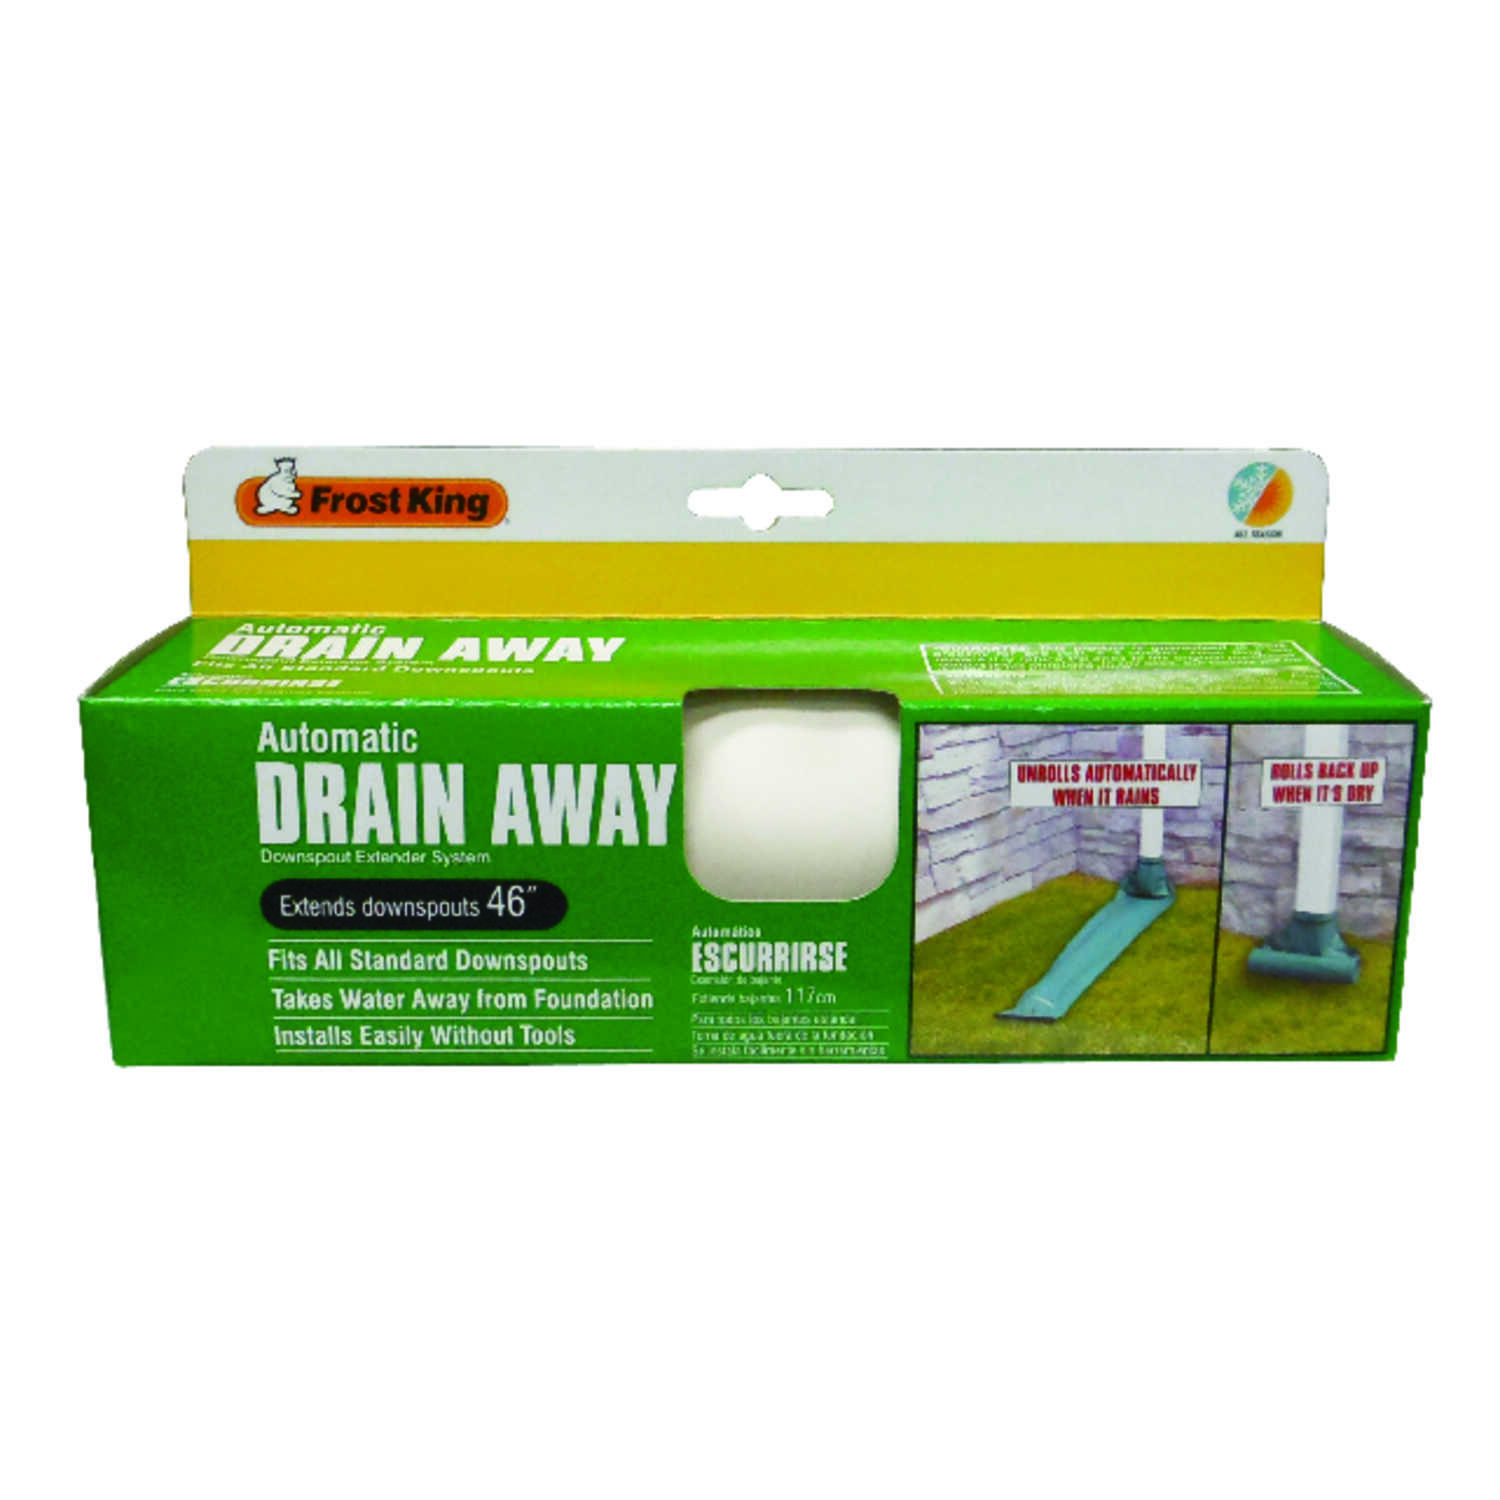 Frost King  Drain Away  8-1/2 in. W x 4 ft. L White  Plastic  Downspout Extension